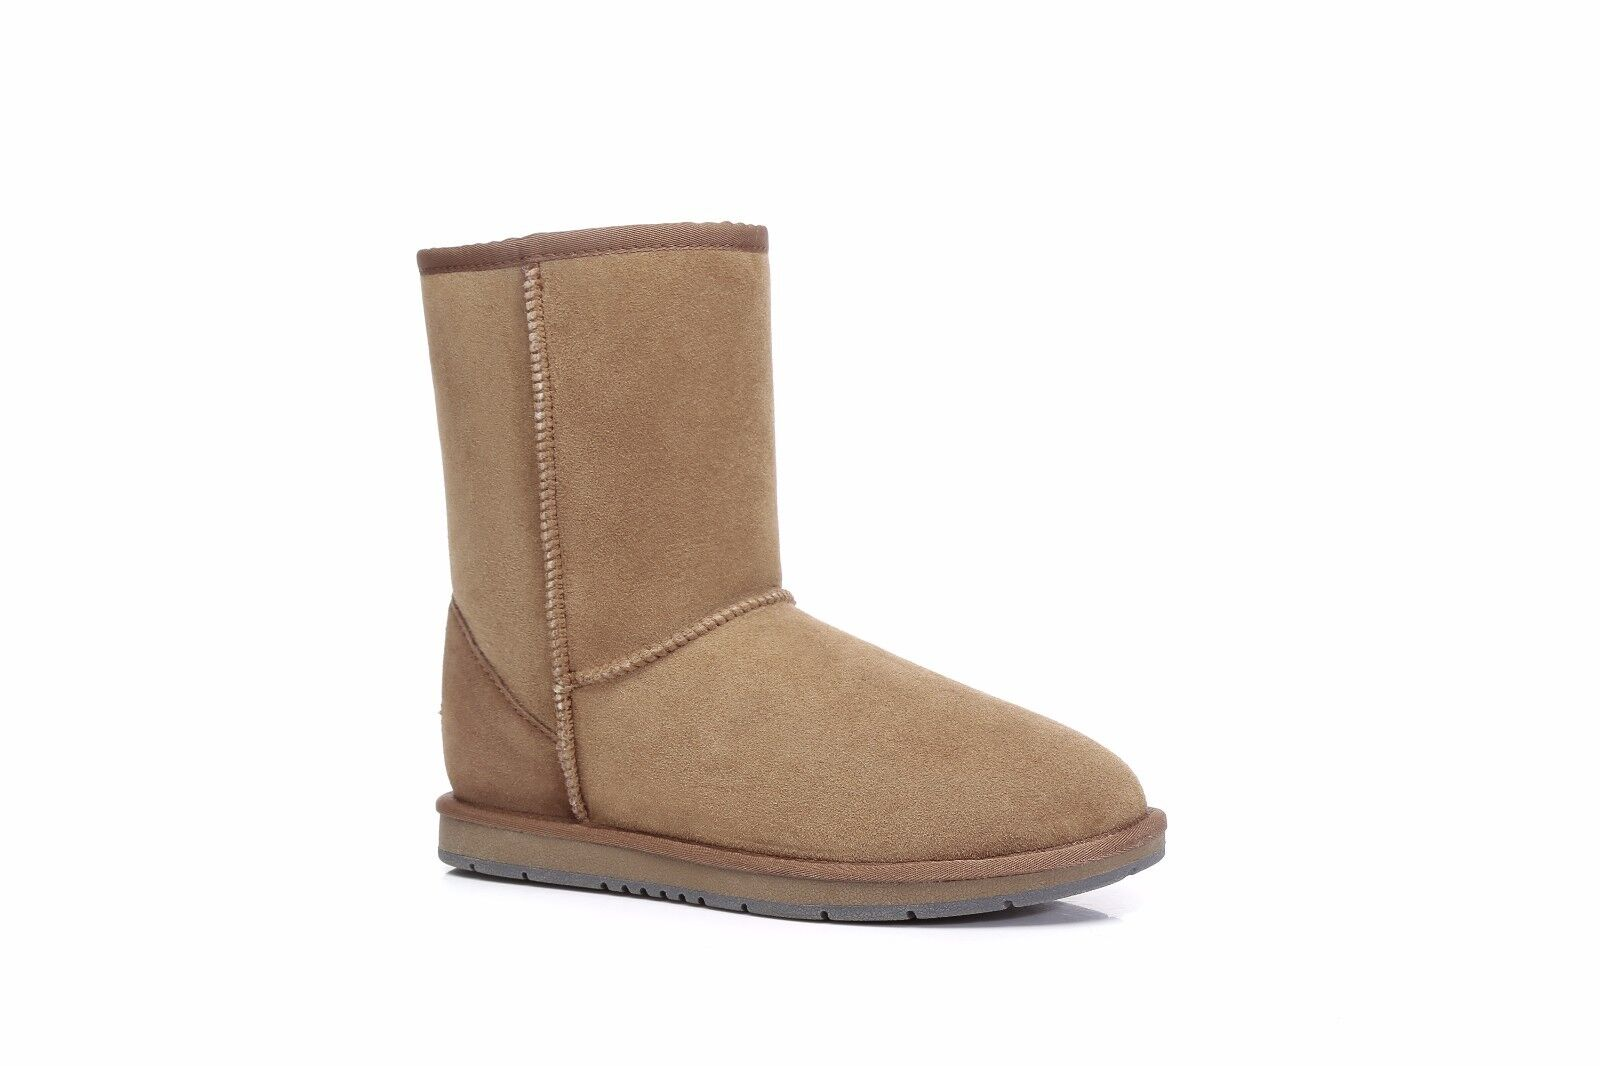 c8463130a55 Non Leather Uggs - cheap watches mgc-gas.com